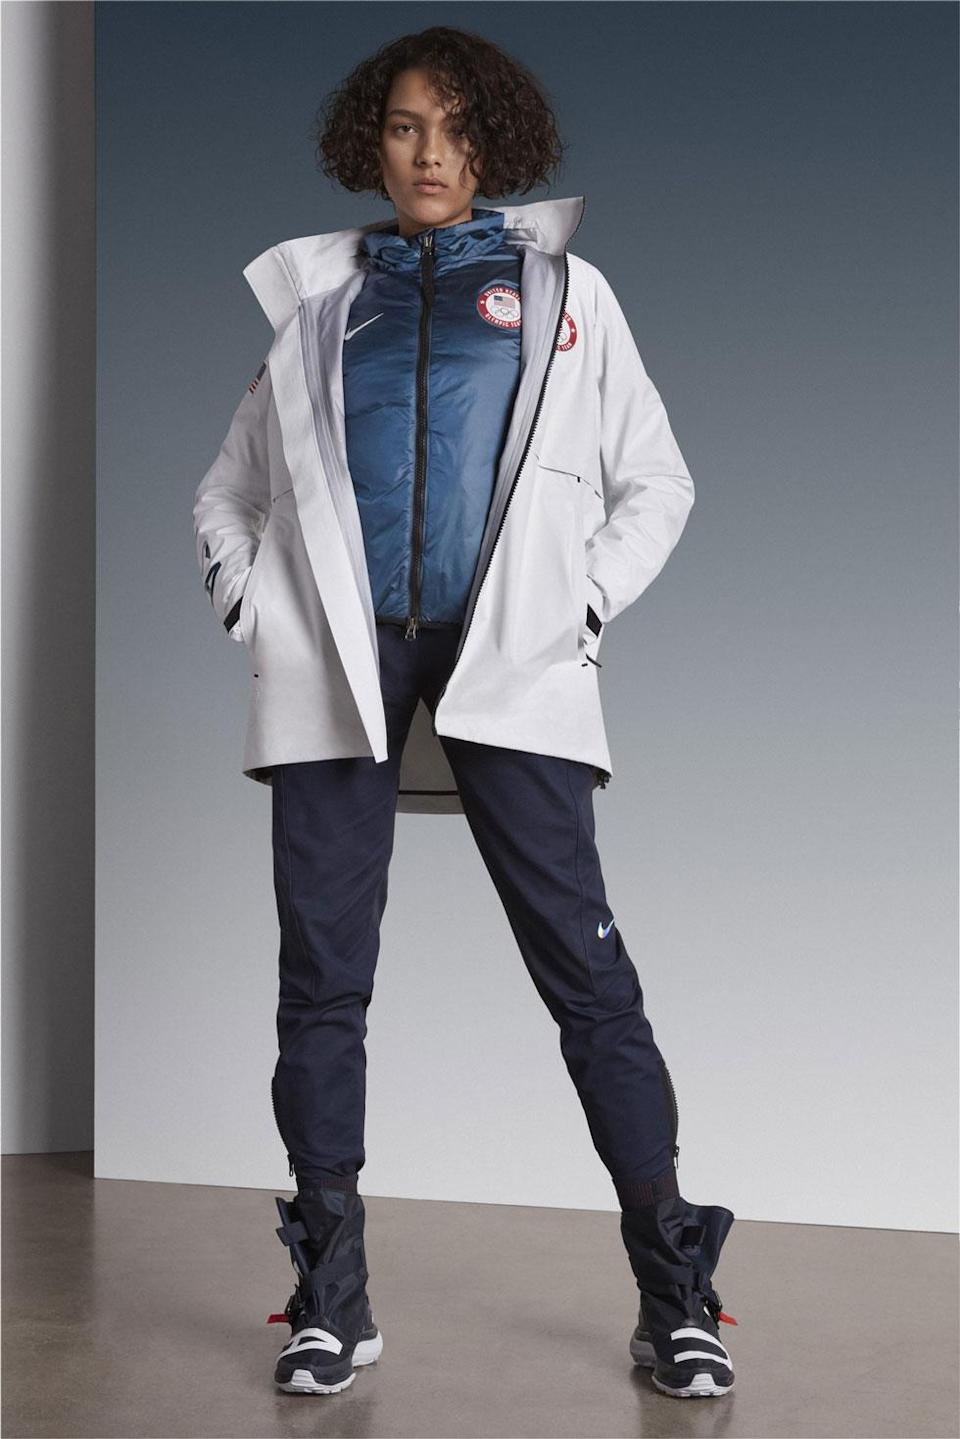 <p>A model sports the women's U.S. Olympic medal stand uniform designed by Nike. (Photo: courtesy of Nike) </p>